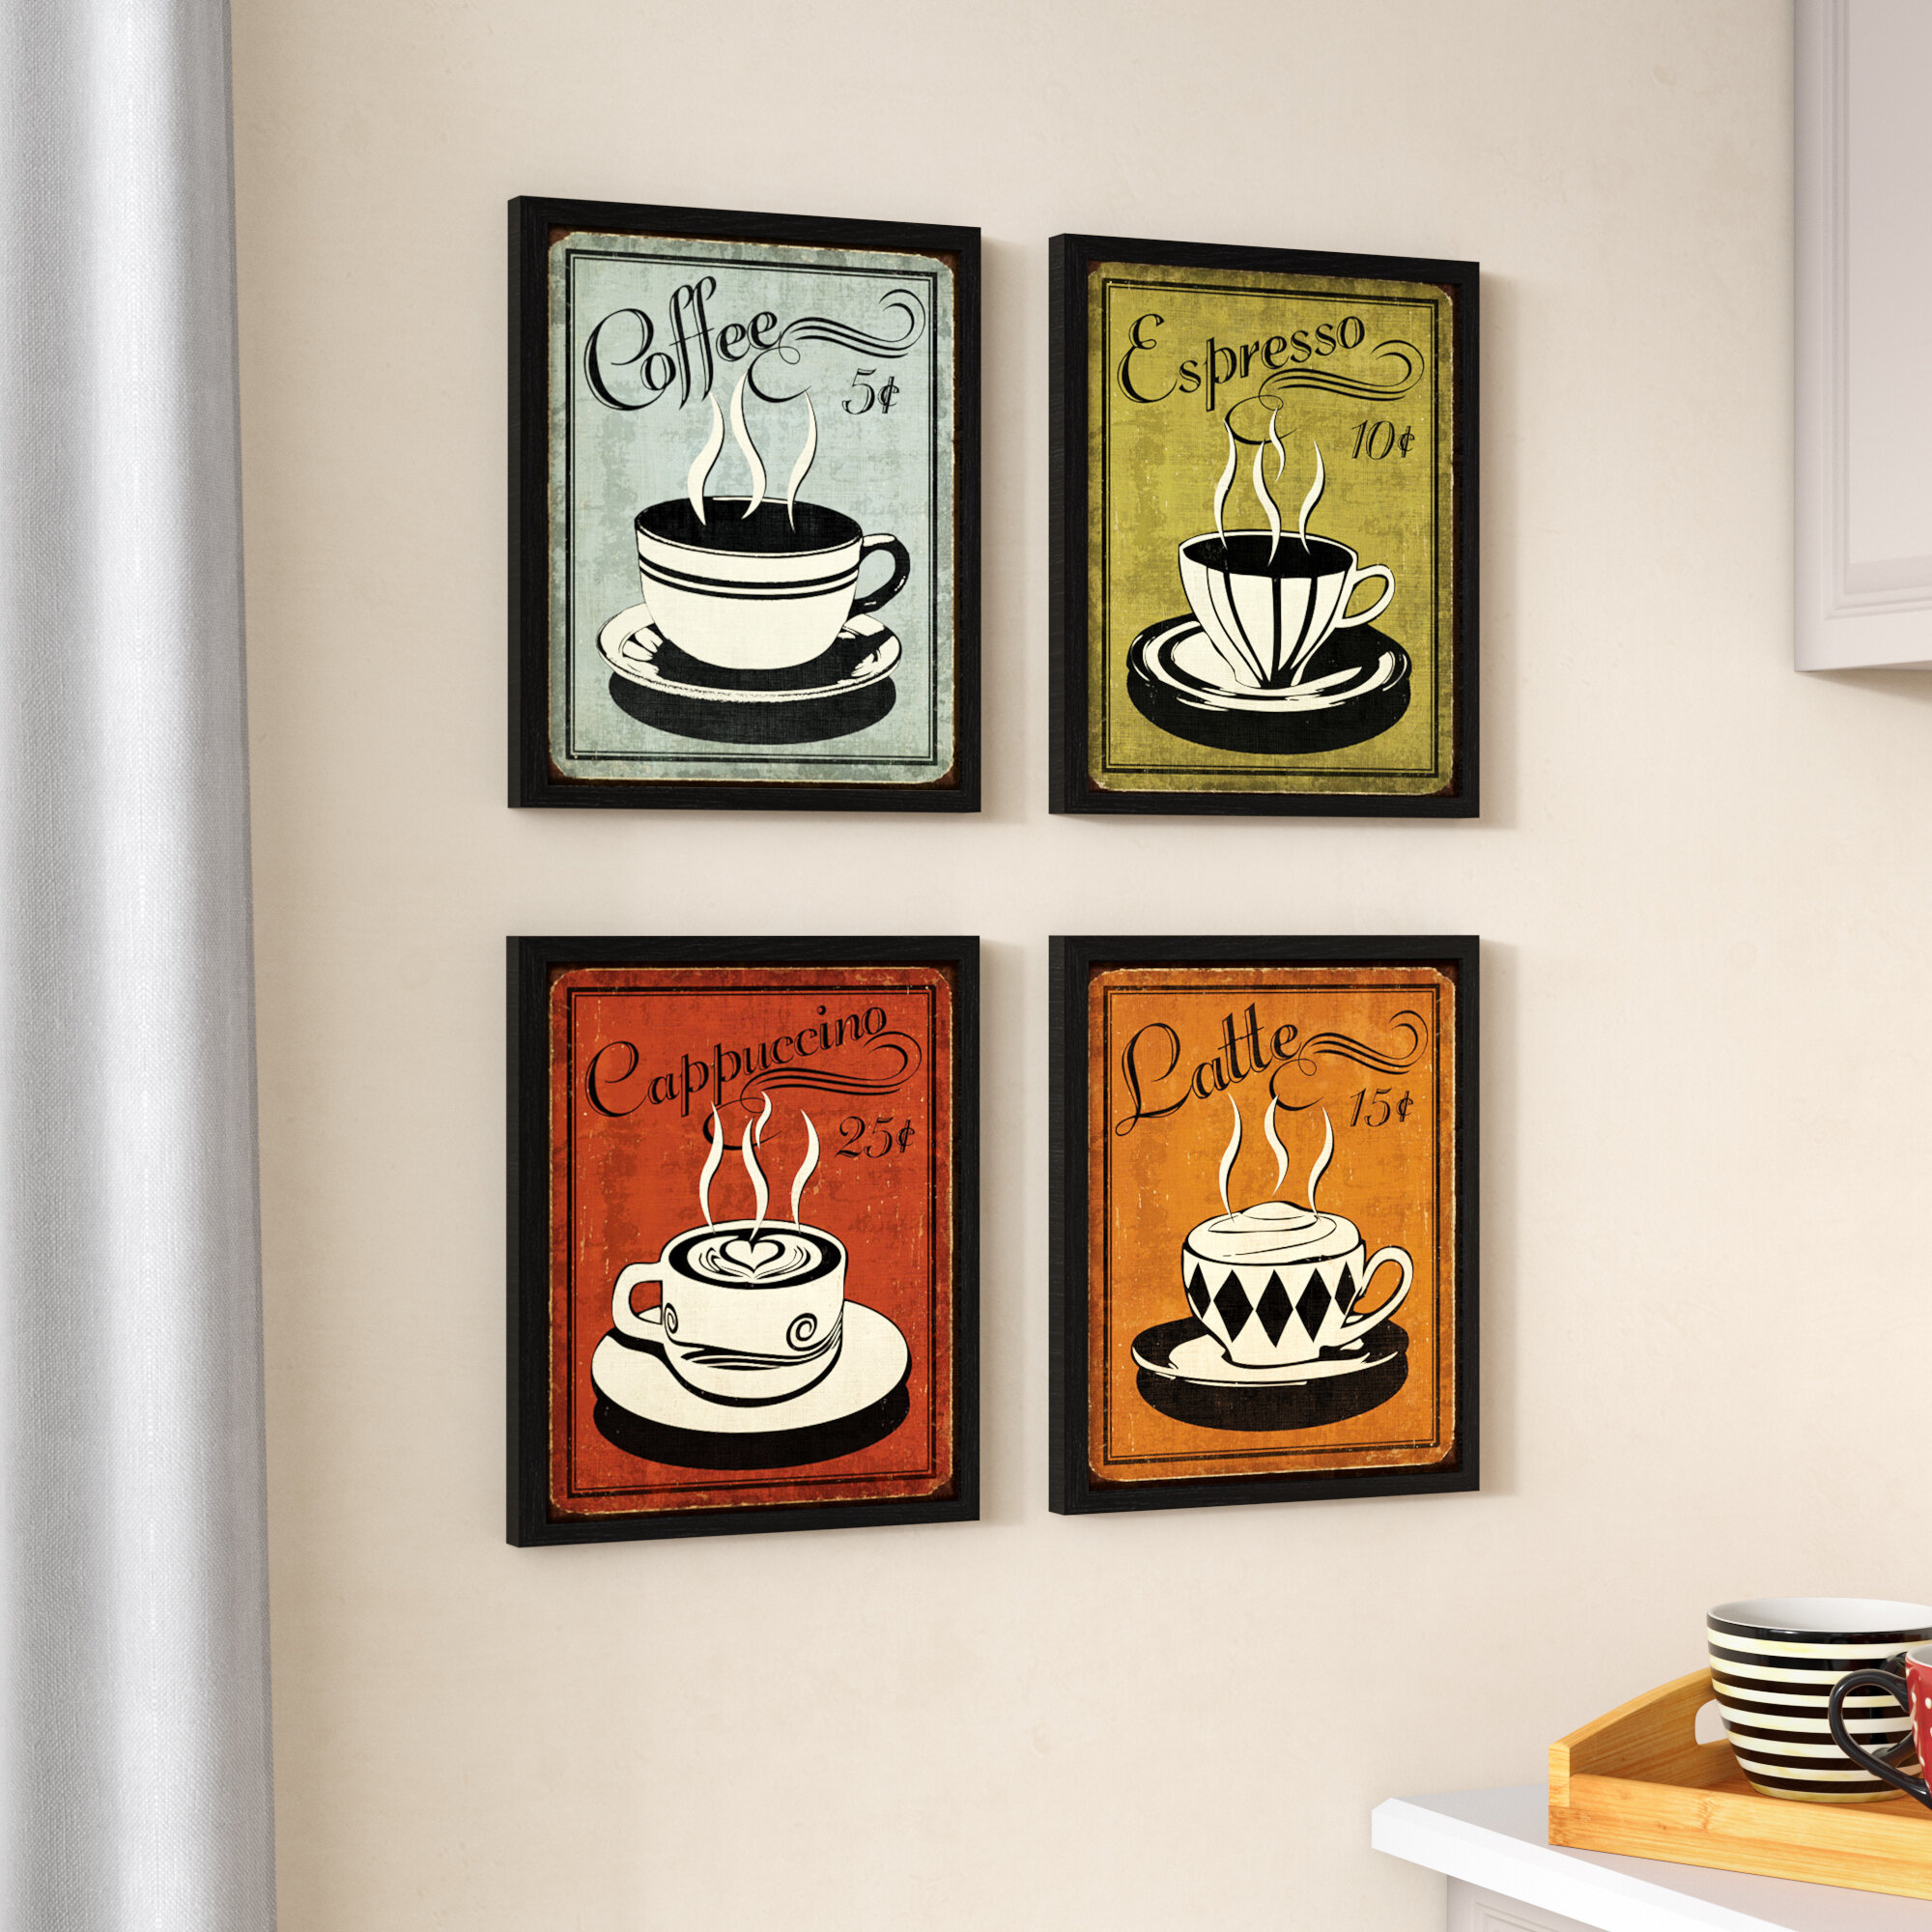 LATTE Large 29 Metal Wall Decor with Two Steaming Coffee Cups Framed Silhouette Wall Art Decor Interior Decoration